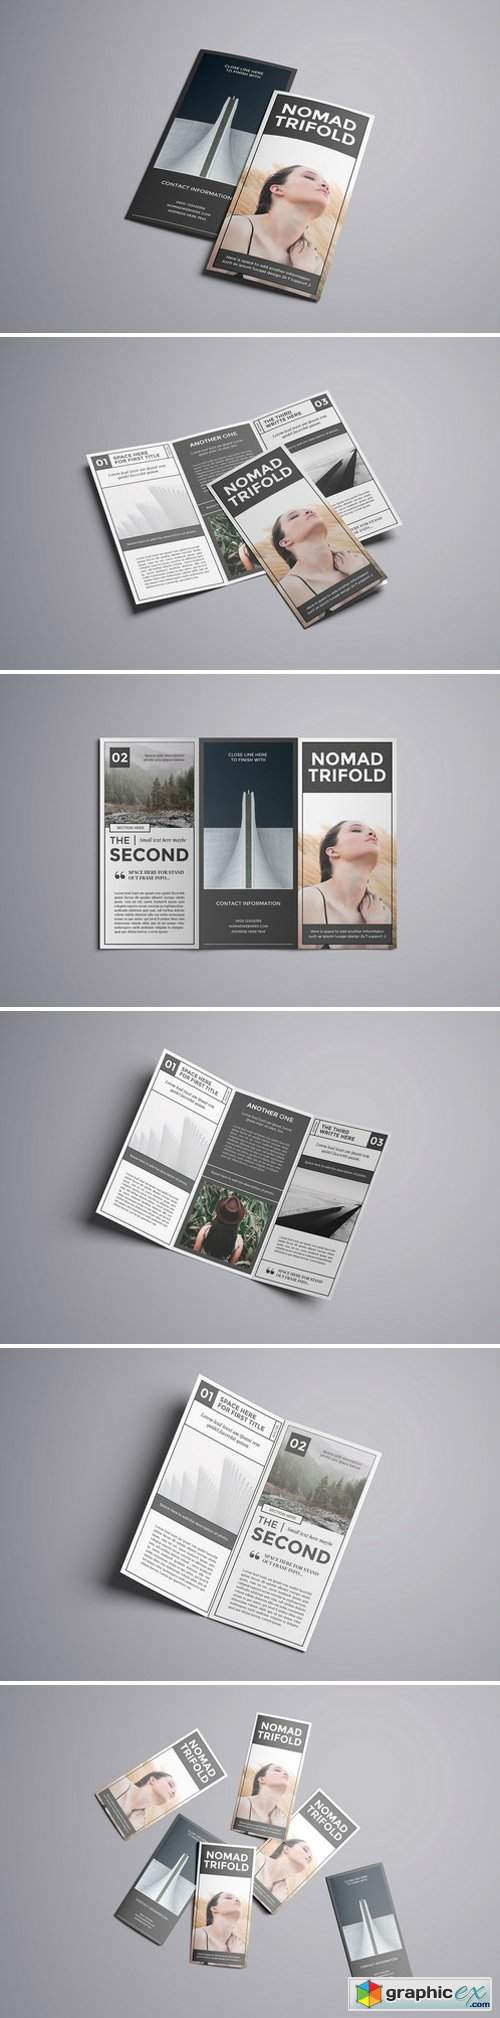 Nomad A4 Trifold Brochure 1867298